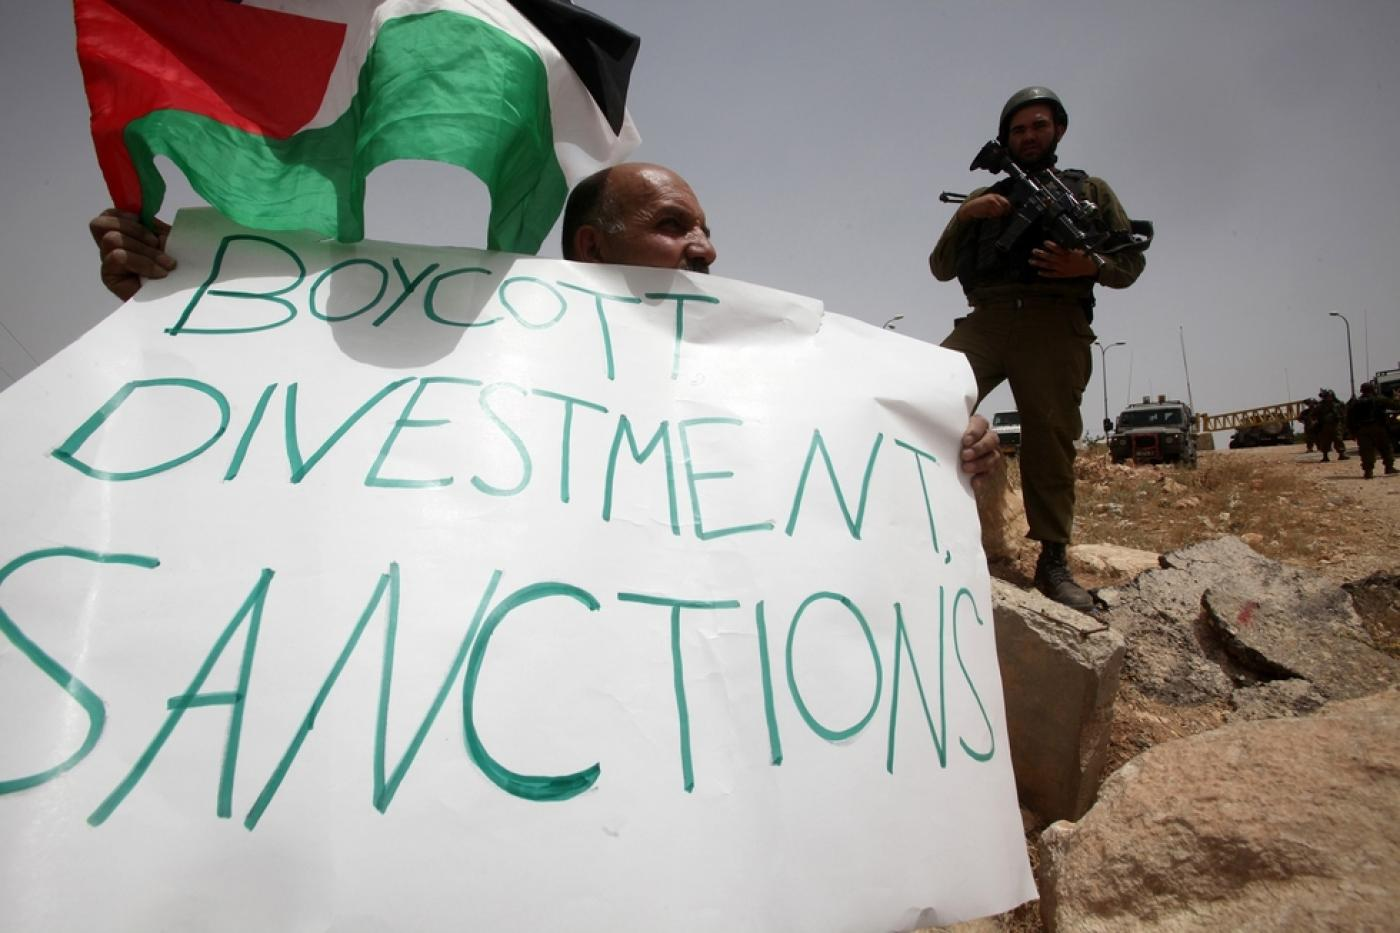 HSBC to divest from Israeli weapons company Elbit Systems